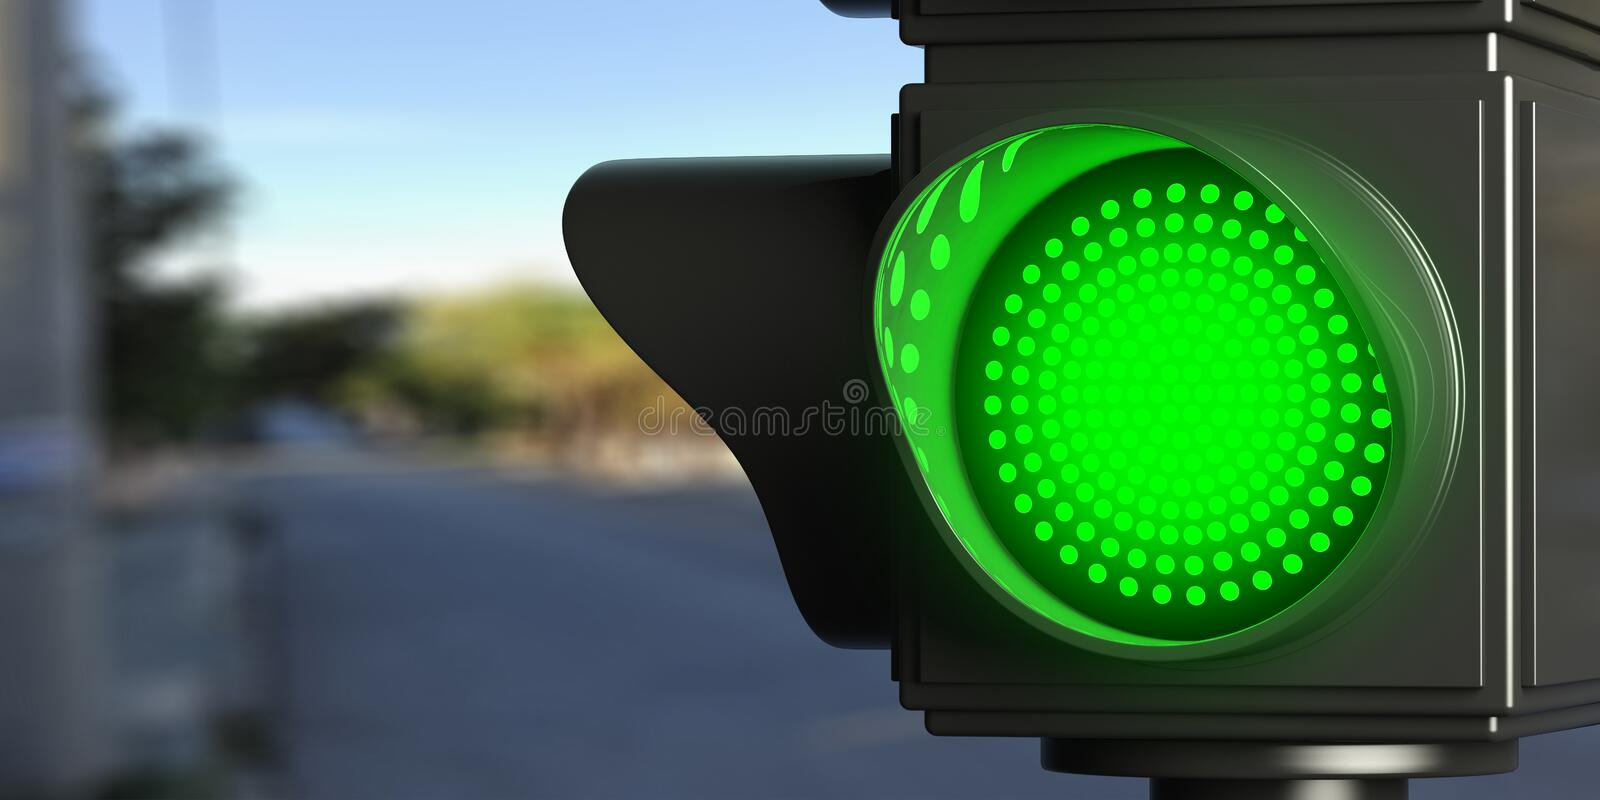 Green traffic lights on blur street background, copy space. 3d illustration. Green led traffic lights on blur street background, copy space. 3d illustration vector illustration